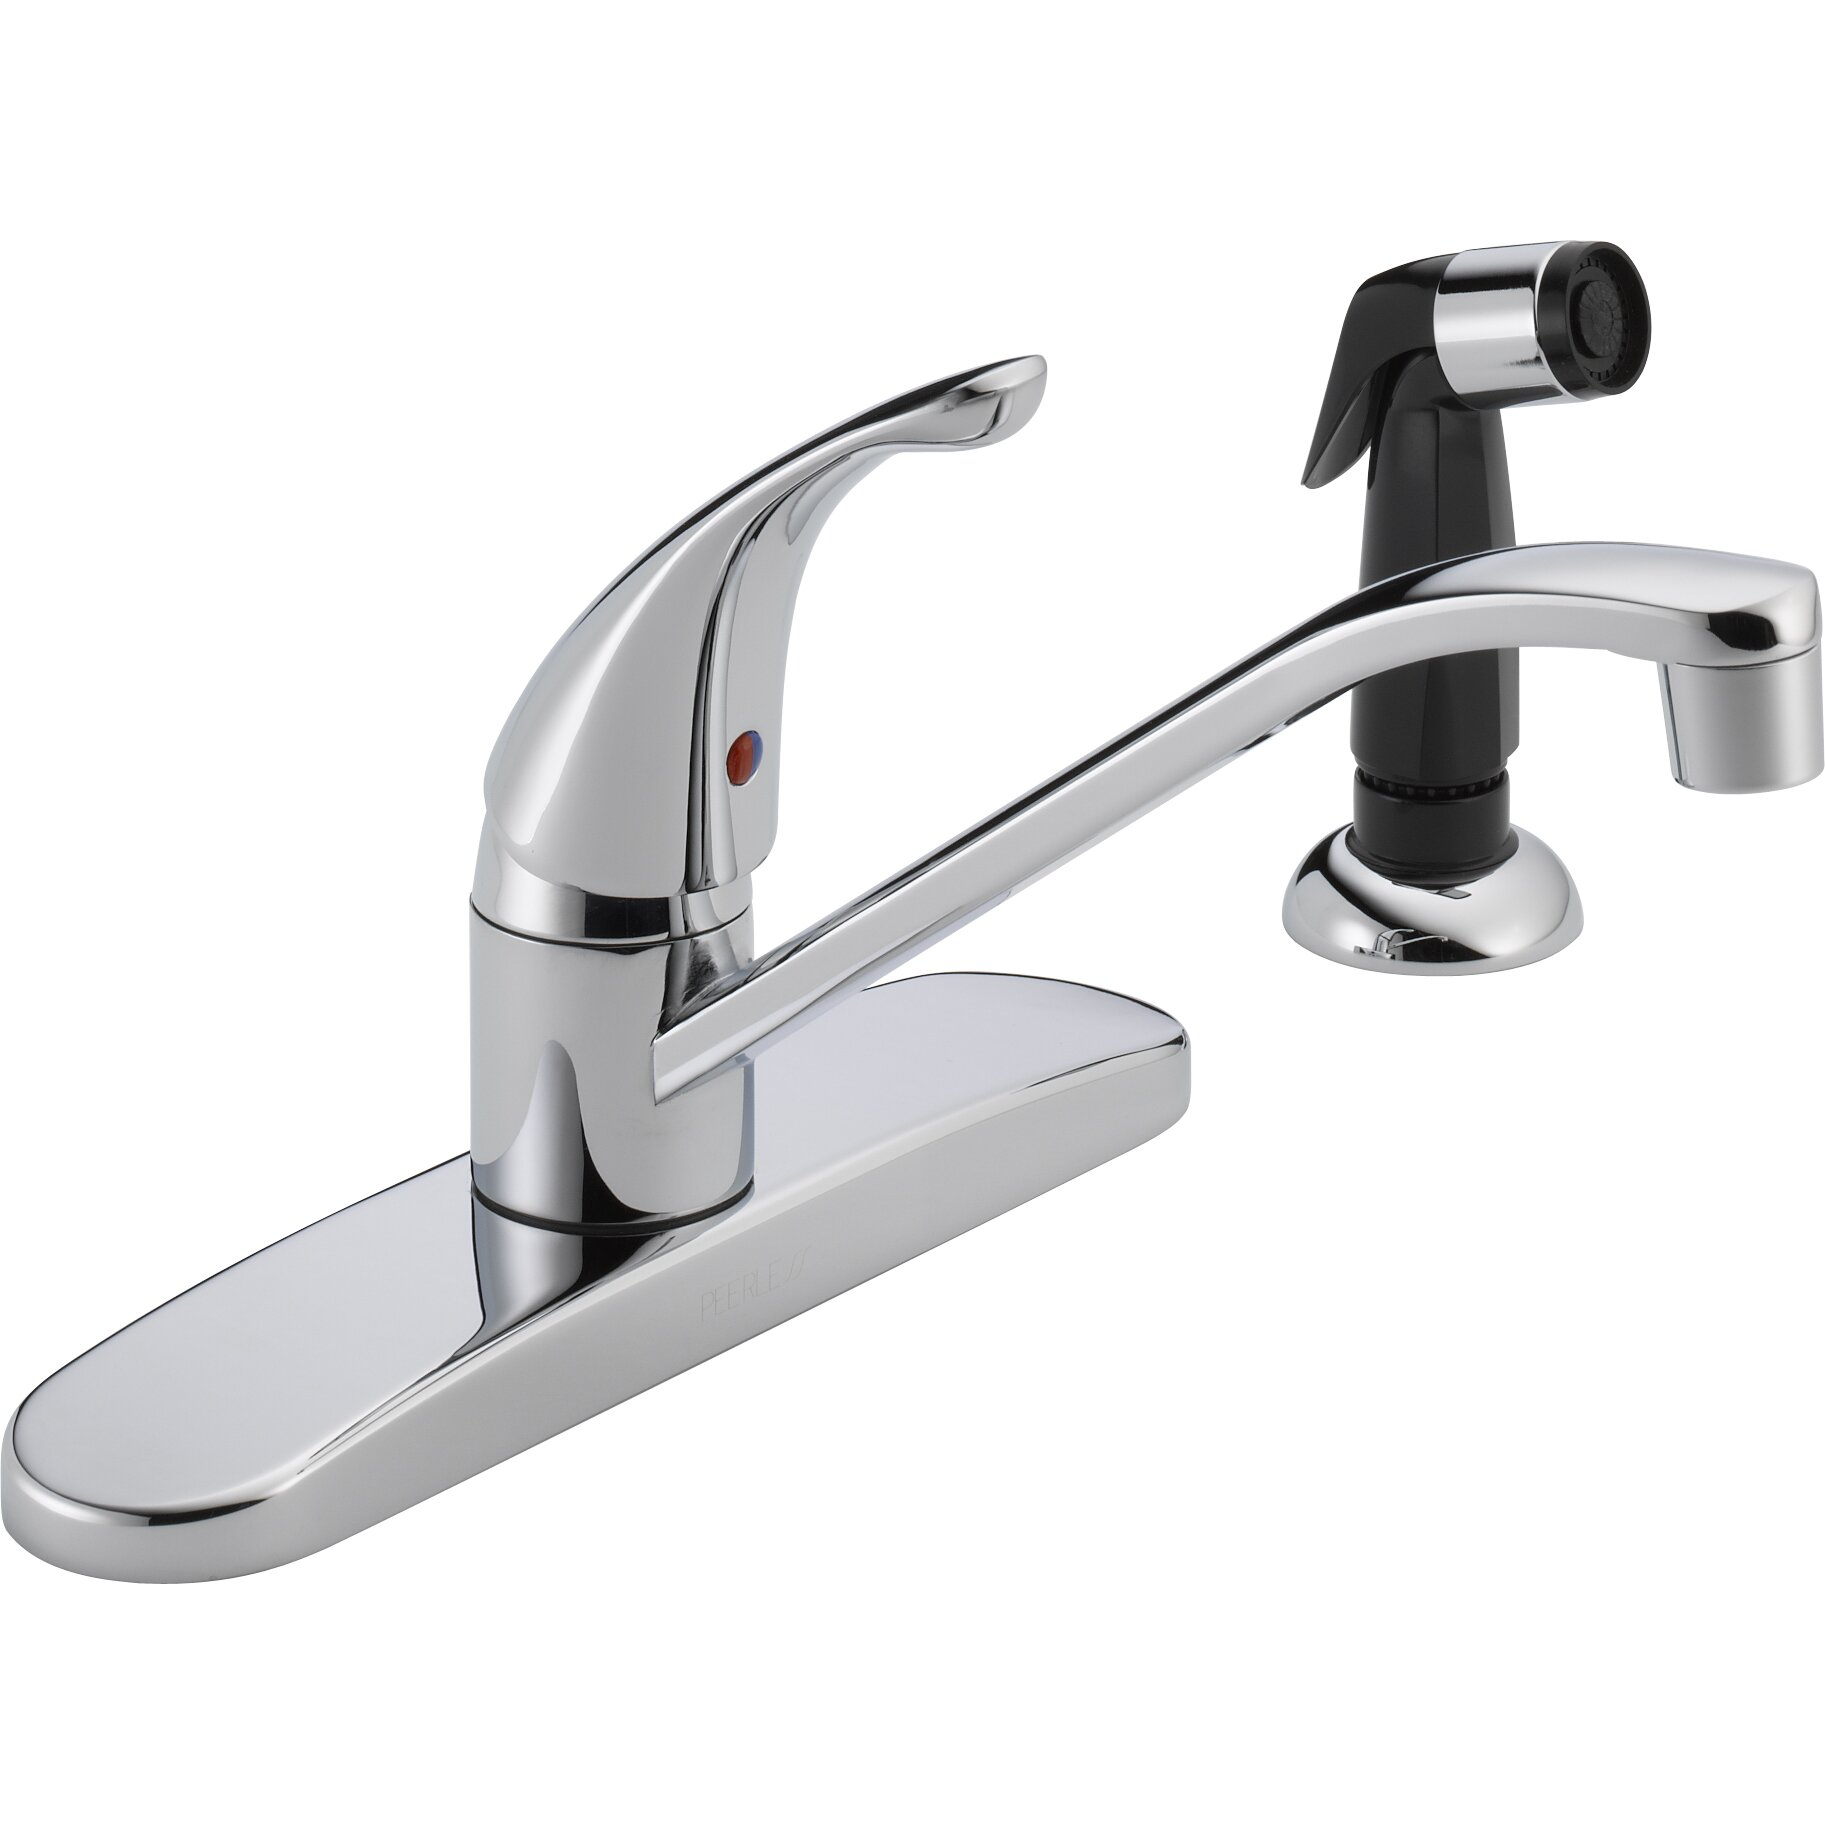 Peerless Faucets Single Handle Centerset Kitchen Faucet With Side Spray Reviews Wayfair